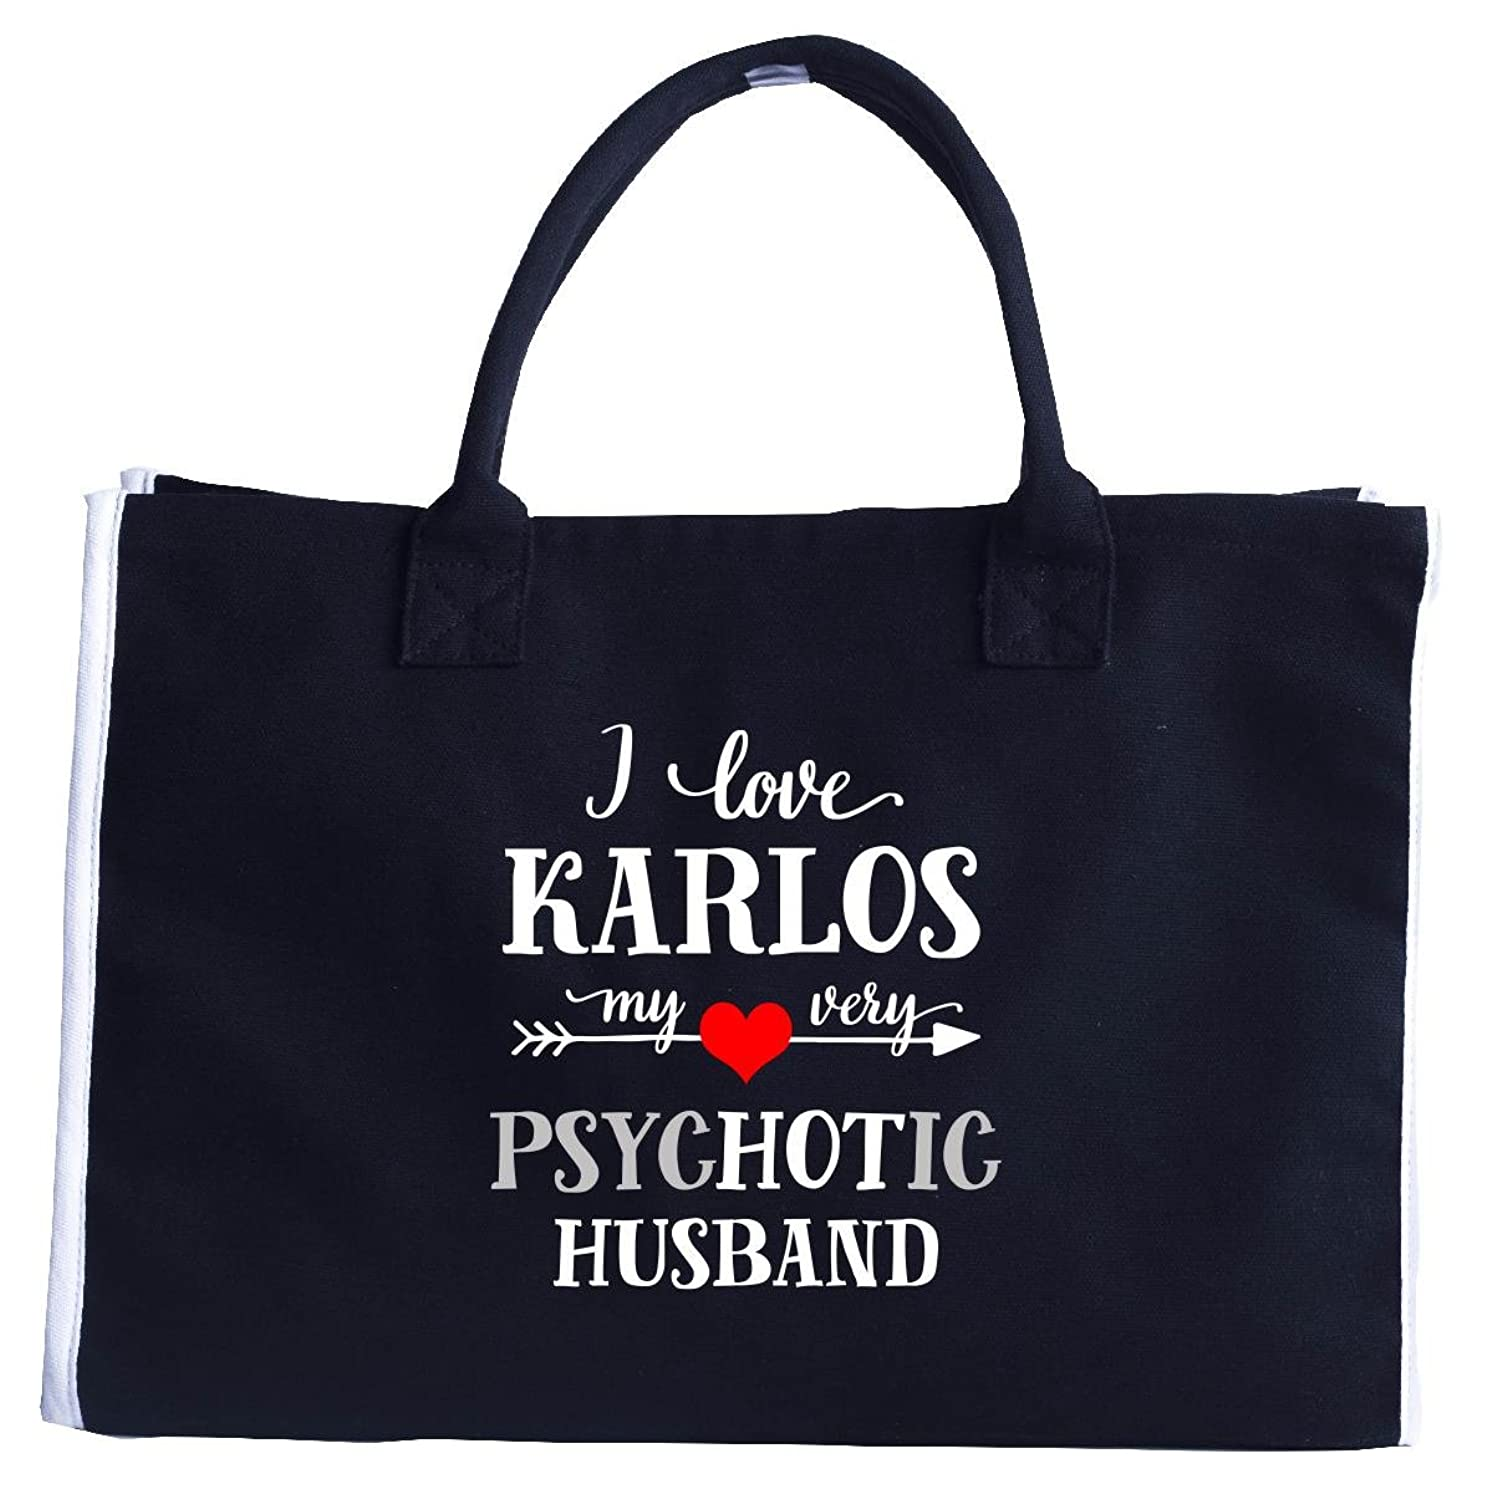 I Love Karlos My Very Psychotic Husband. Gift For Her - Fashion Tote Bag